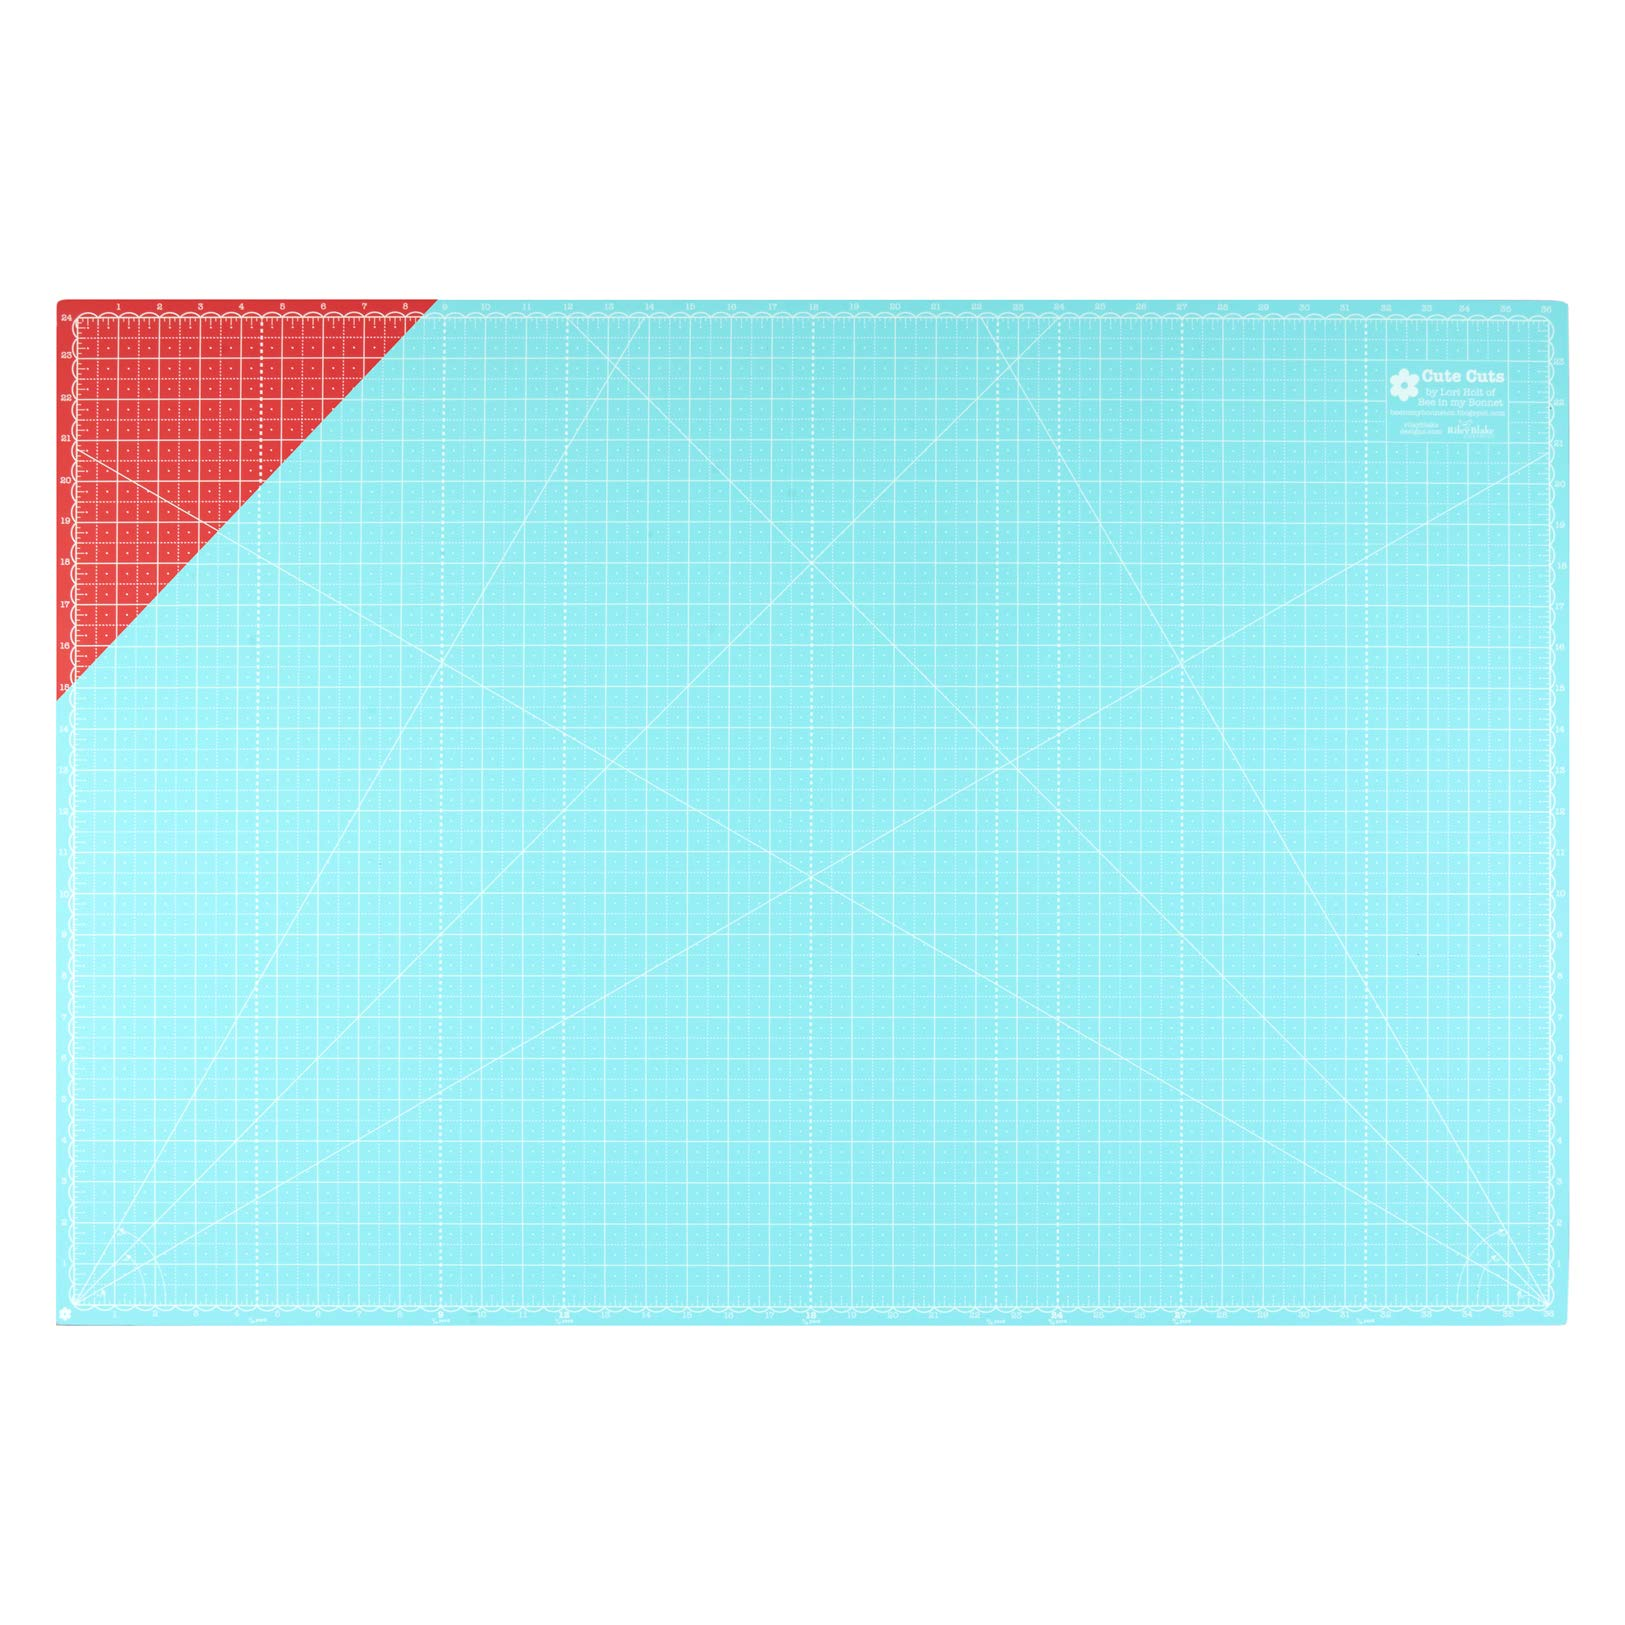 Riley Blake Designs Lori Holt 24'' x 36'' Cutting Mat Riley Red/Cottage by Riley Blake Designs